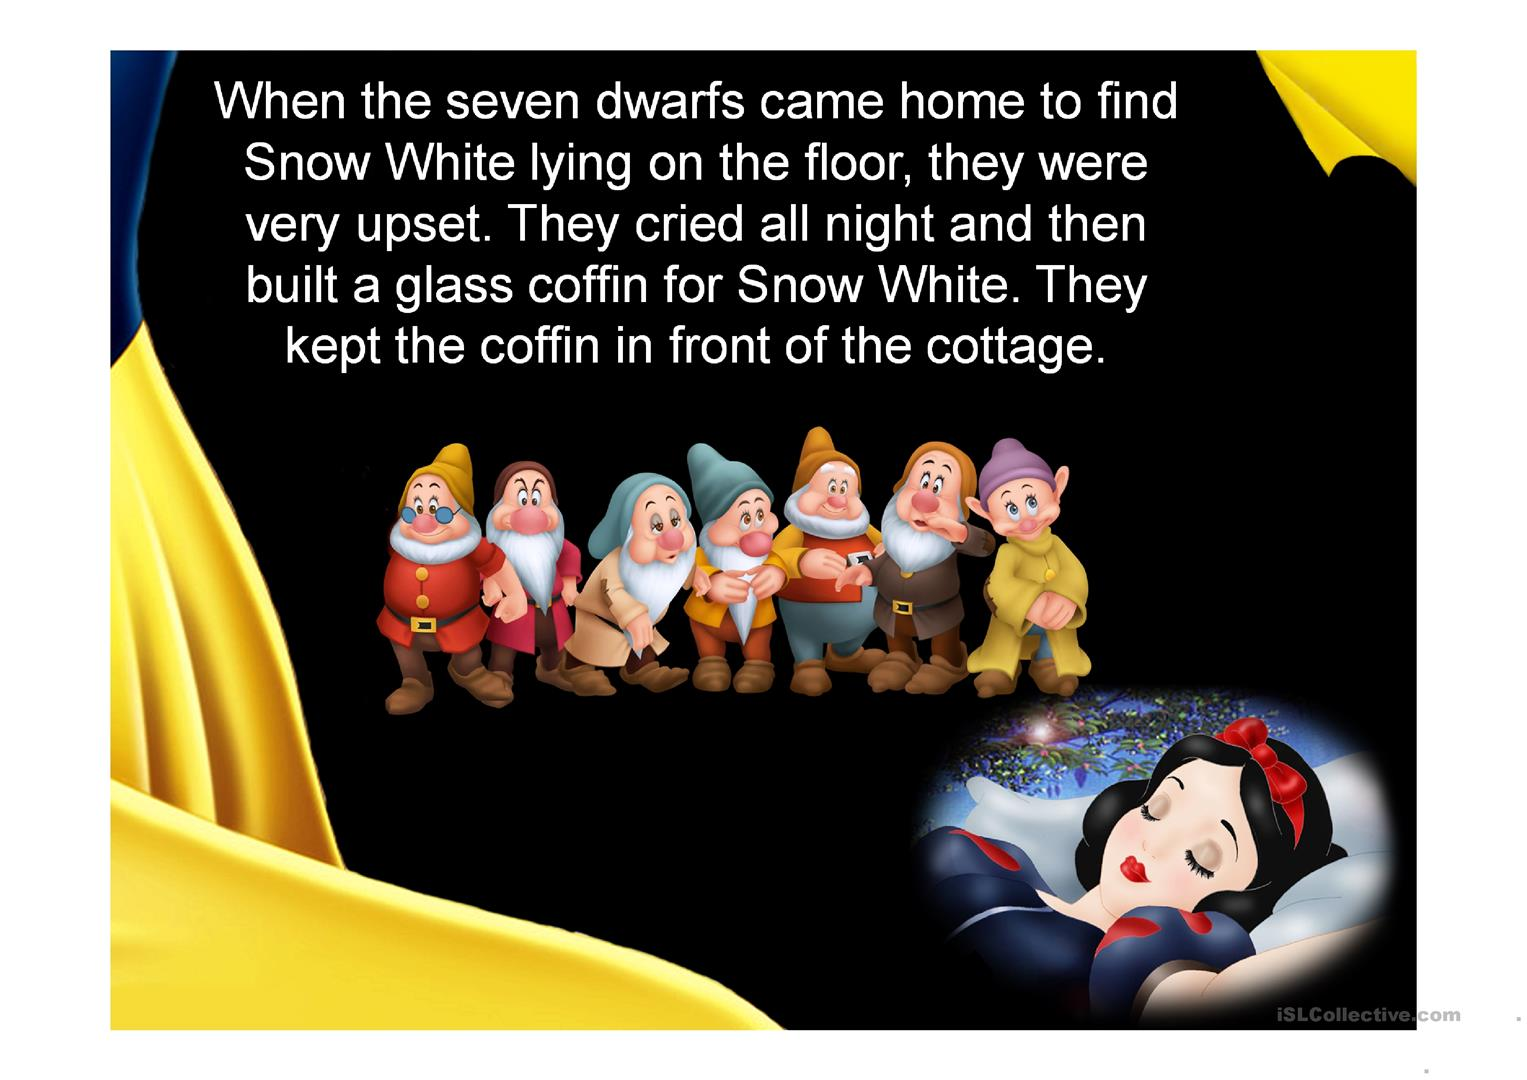 Snow White and the Seven Dwarfs worksheet - Free ESL projectable